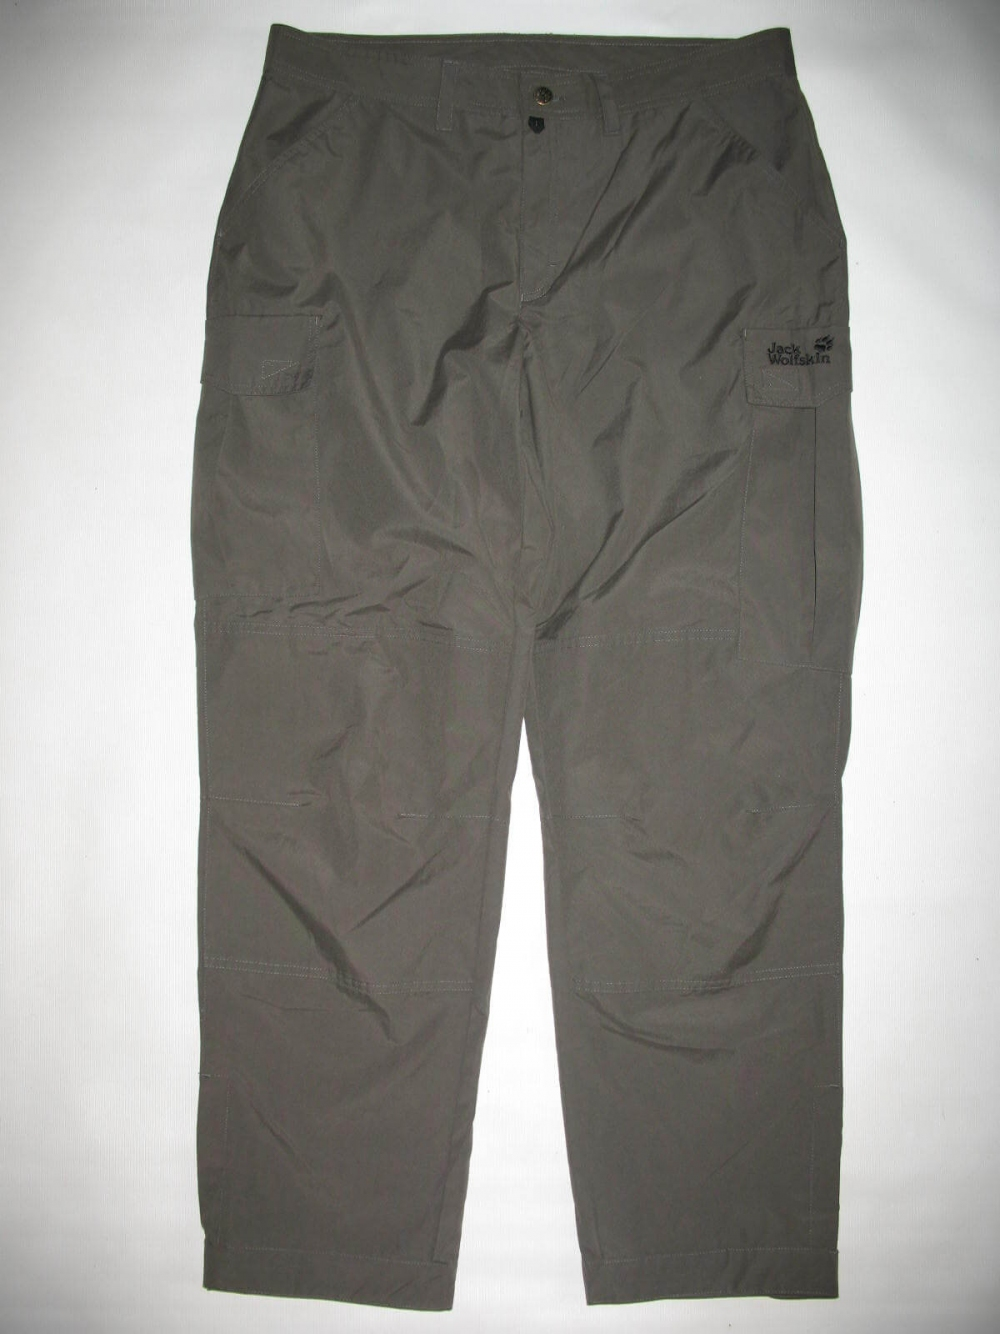 Штаны JACK WOLFSKIN Northpants (размер XL/L) - 1